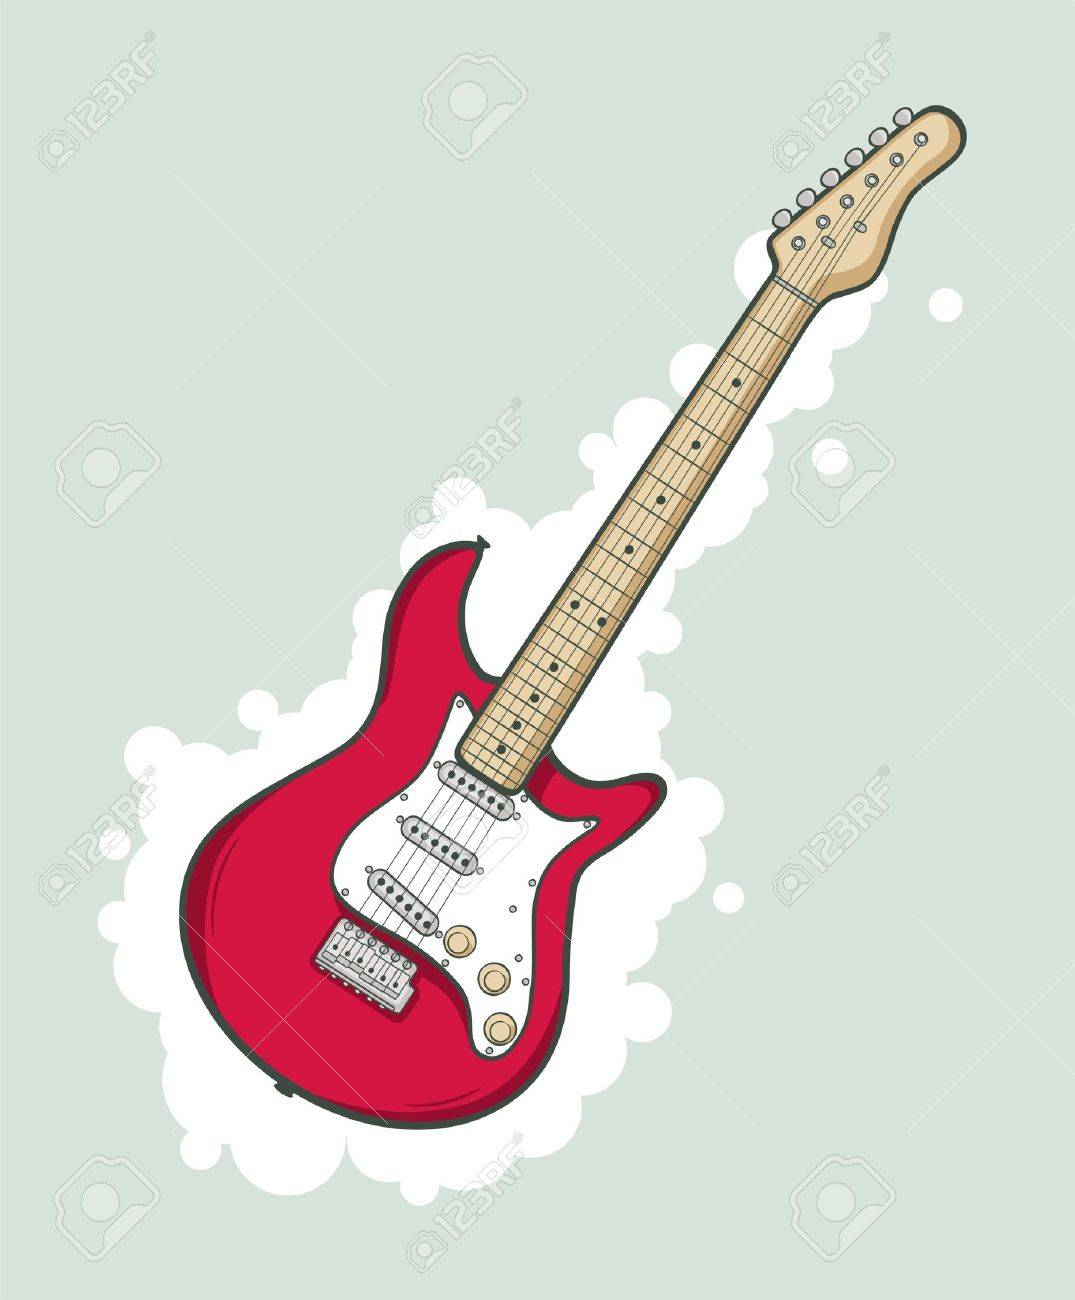 Stylized electric guitar in pink color Stock Vector - 10203840